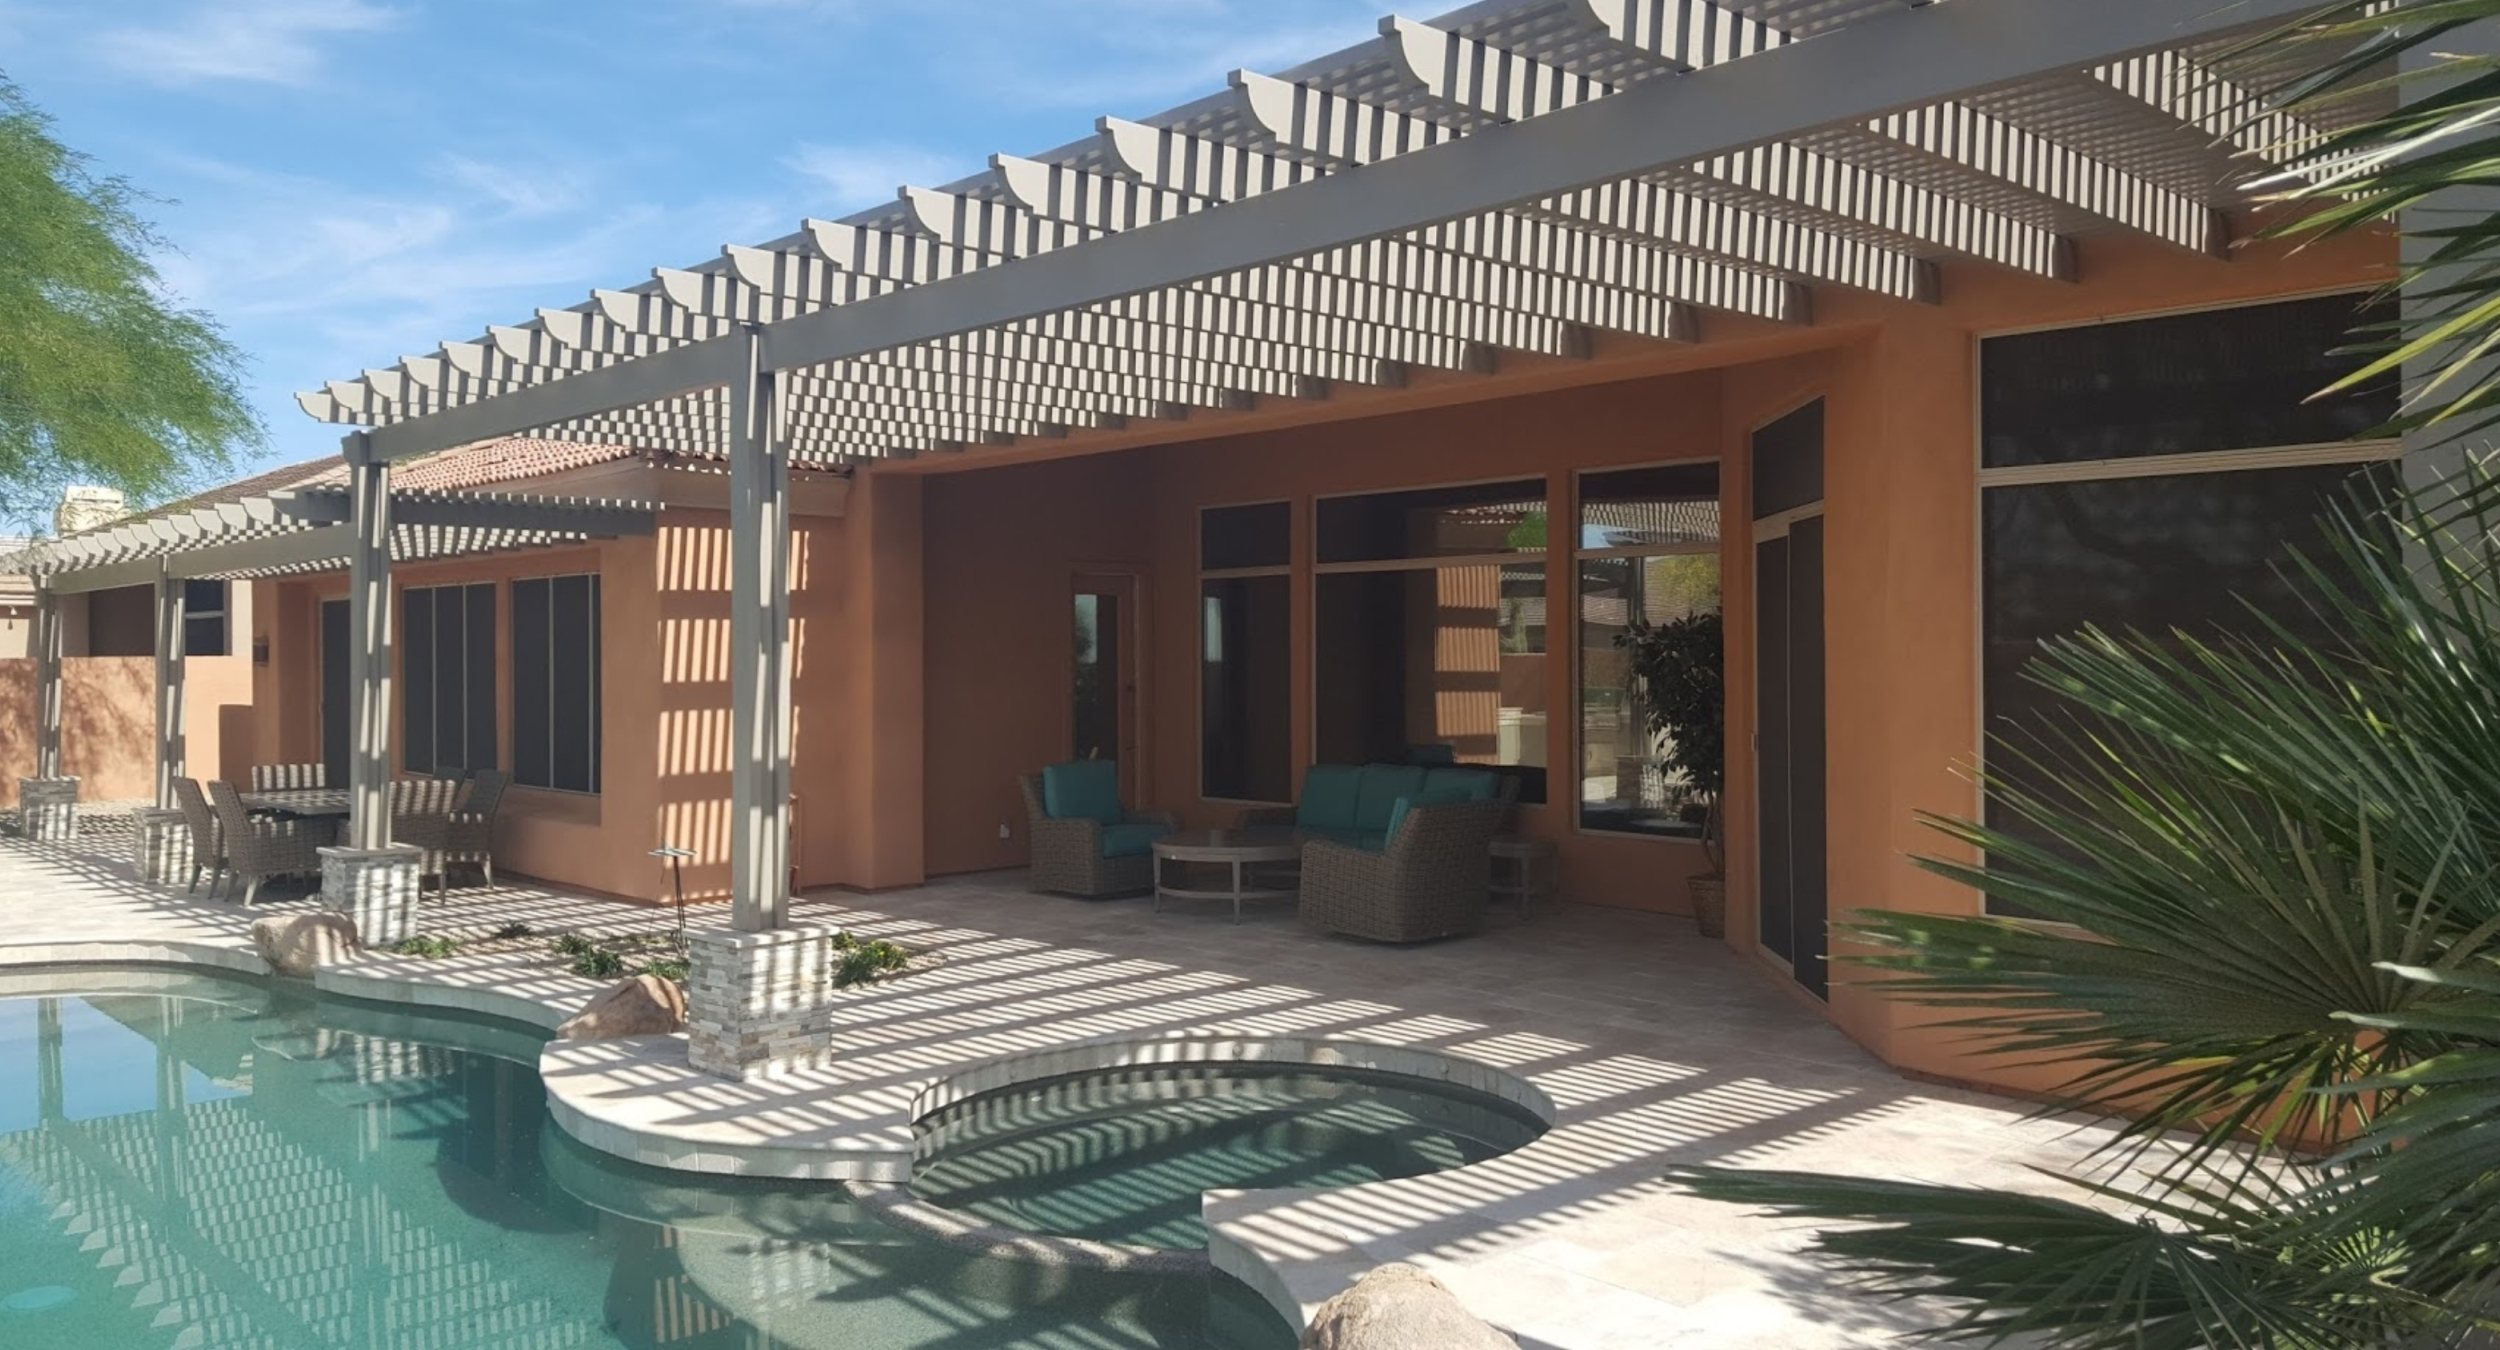 This Phoenix landscape design transformed a drab backyard into fab with a travertine patio-pool deck and an aluminum pergola that runs the full length of the house.